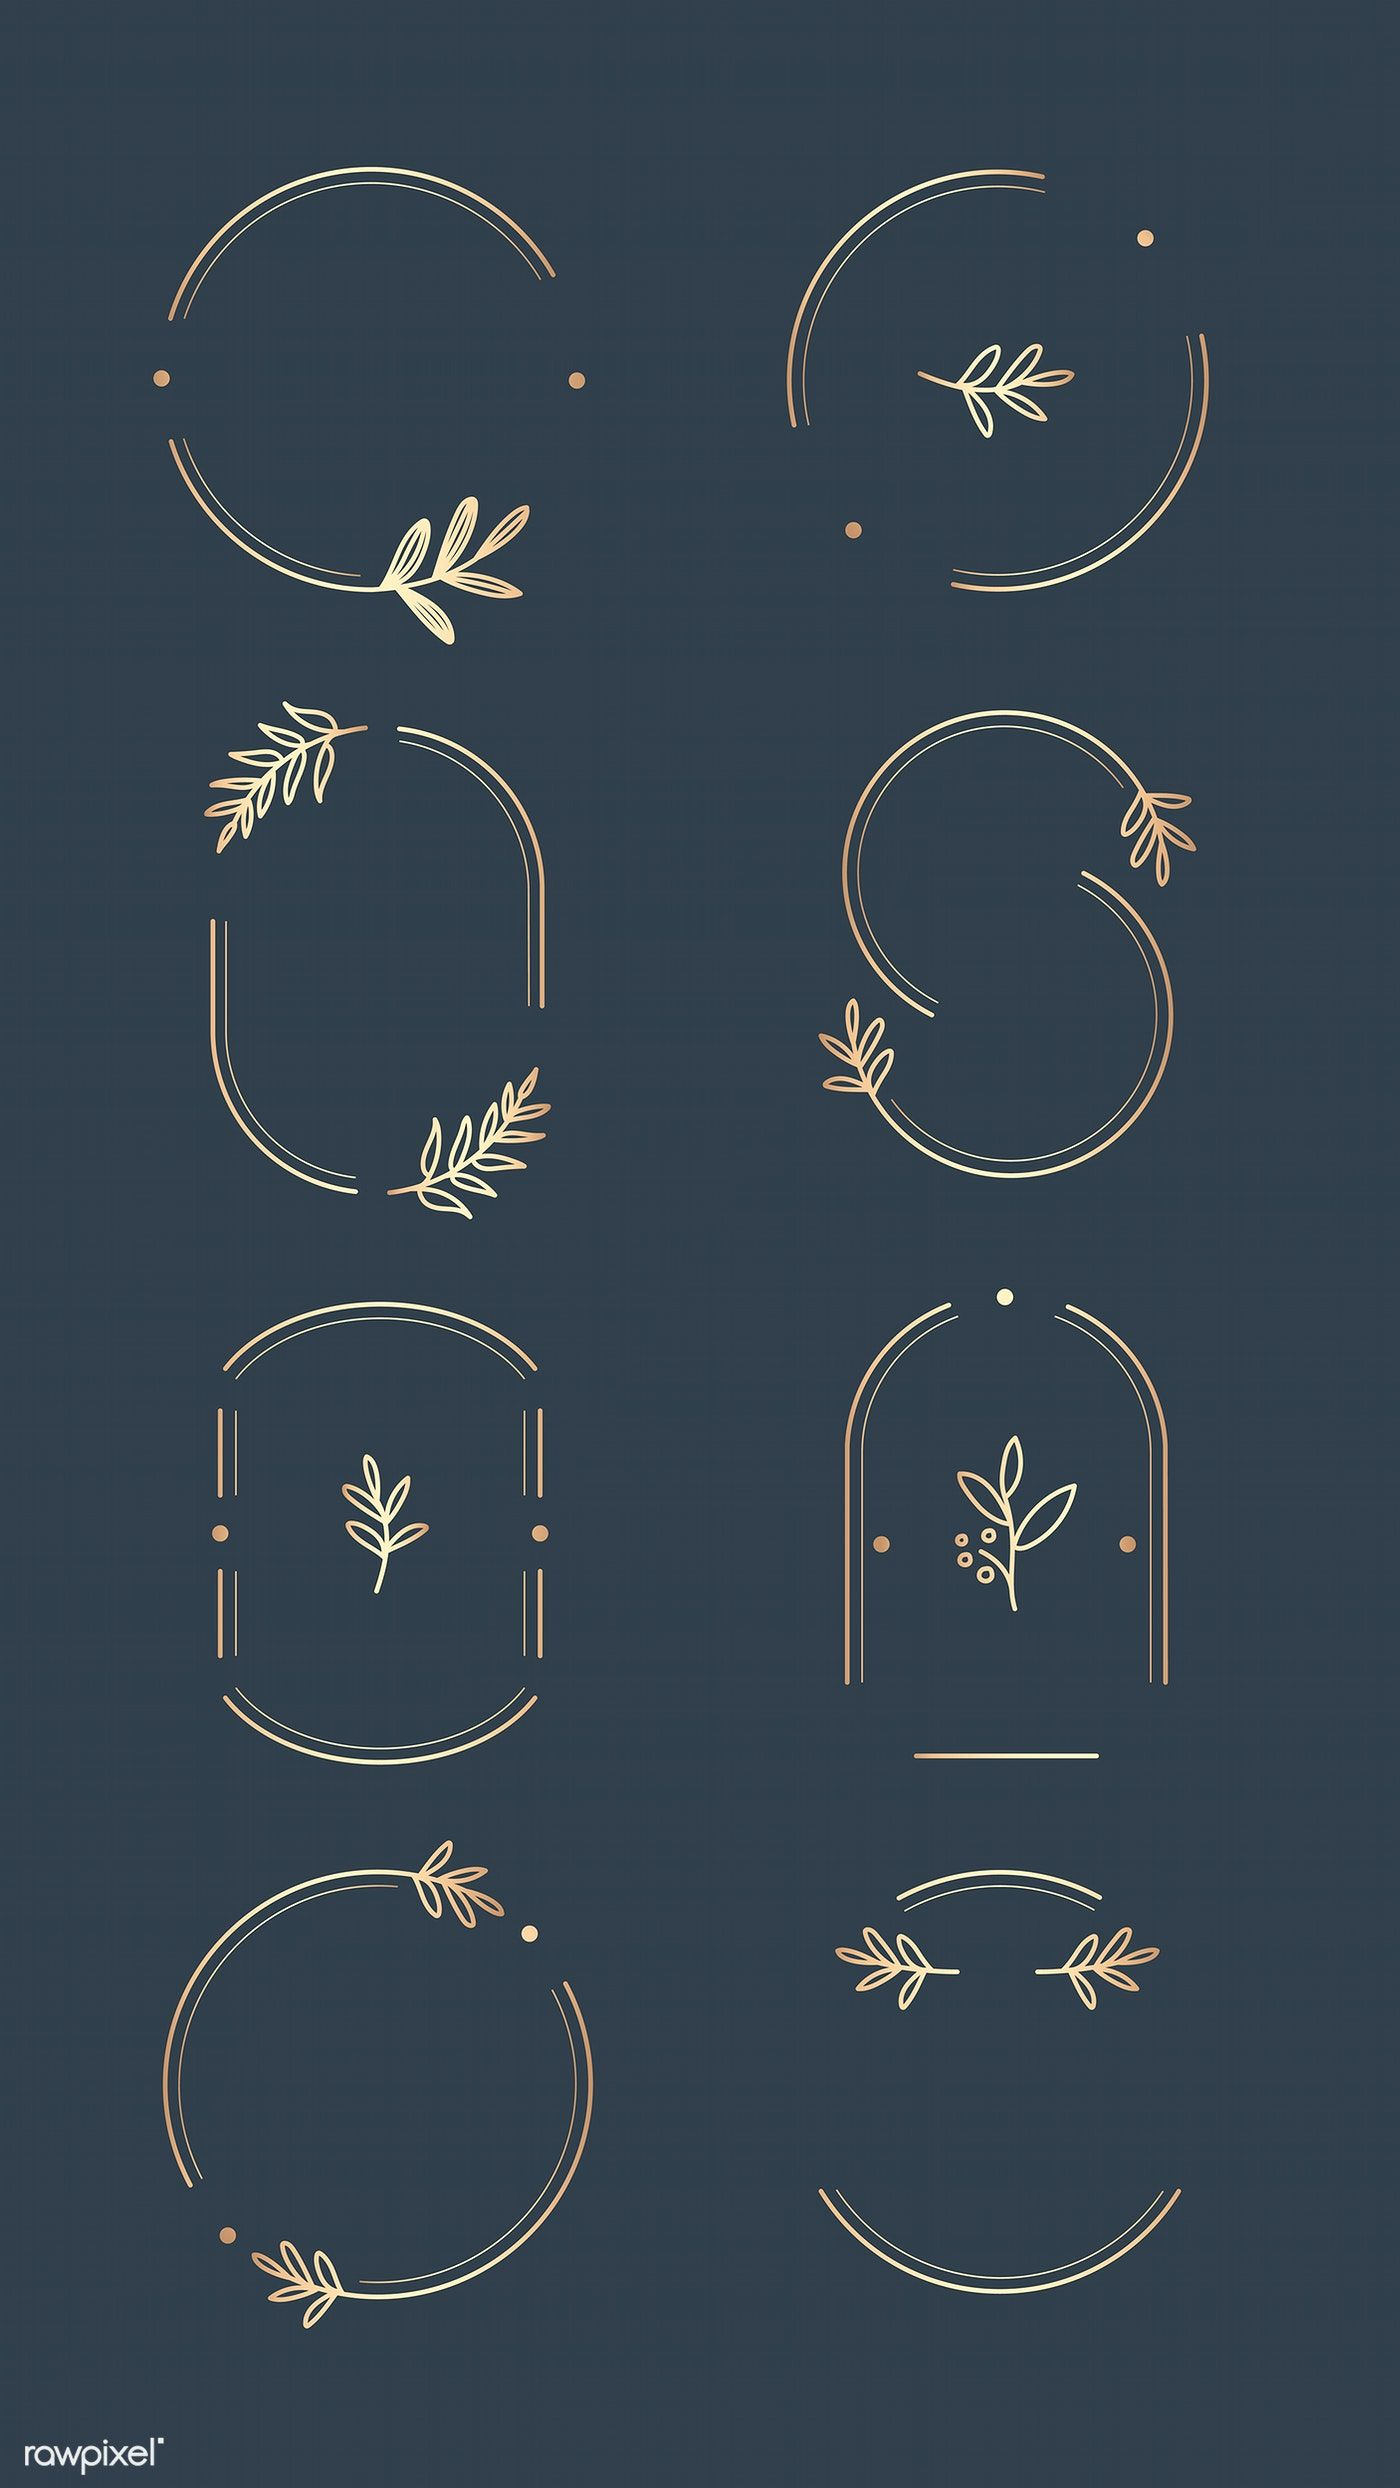 Download premium vector of Floral logo design collection on a aegean blue